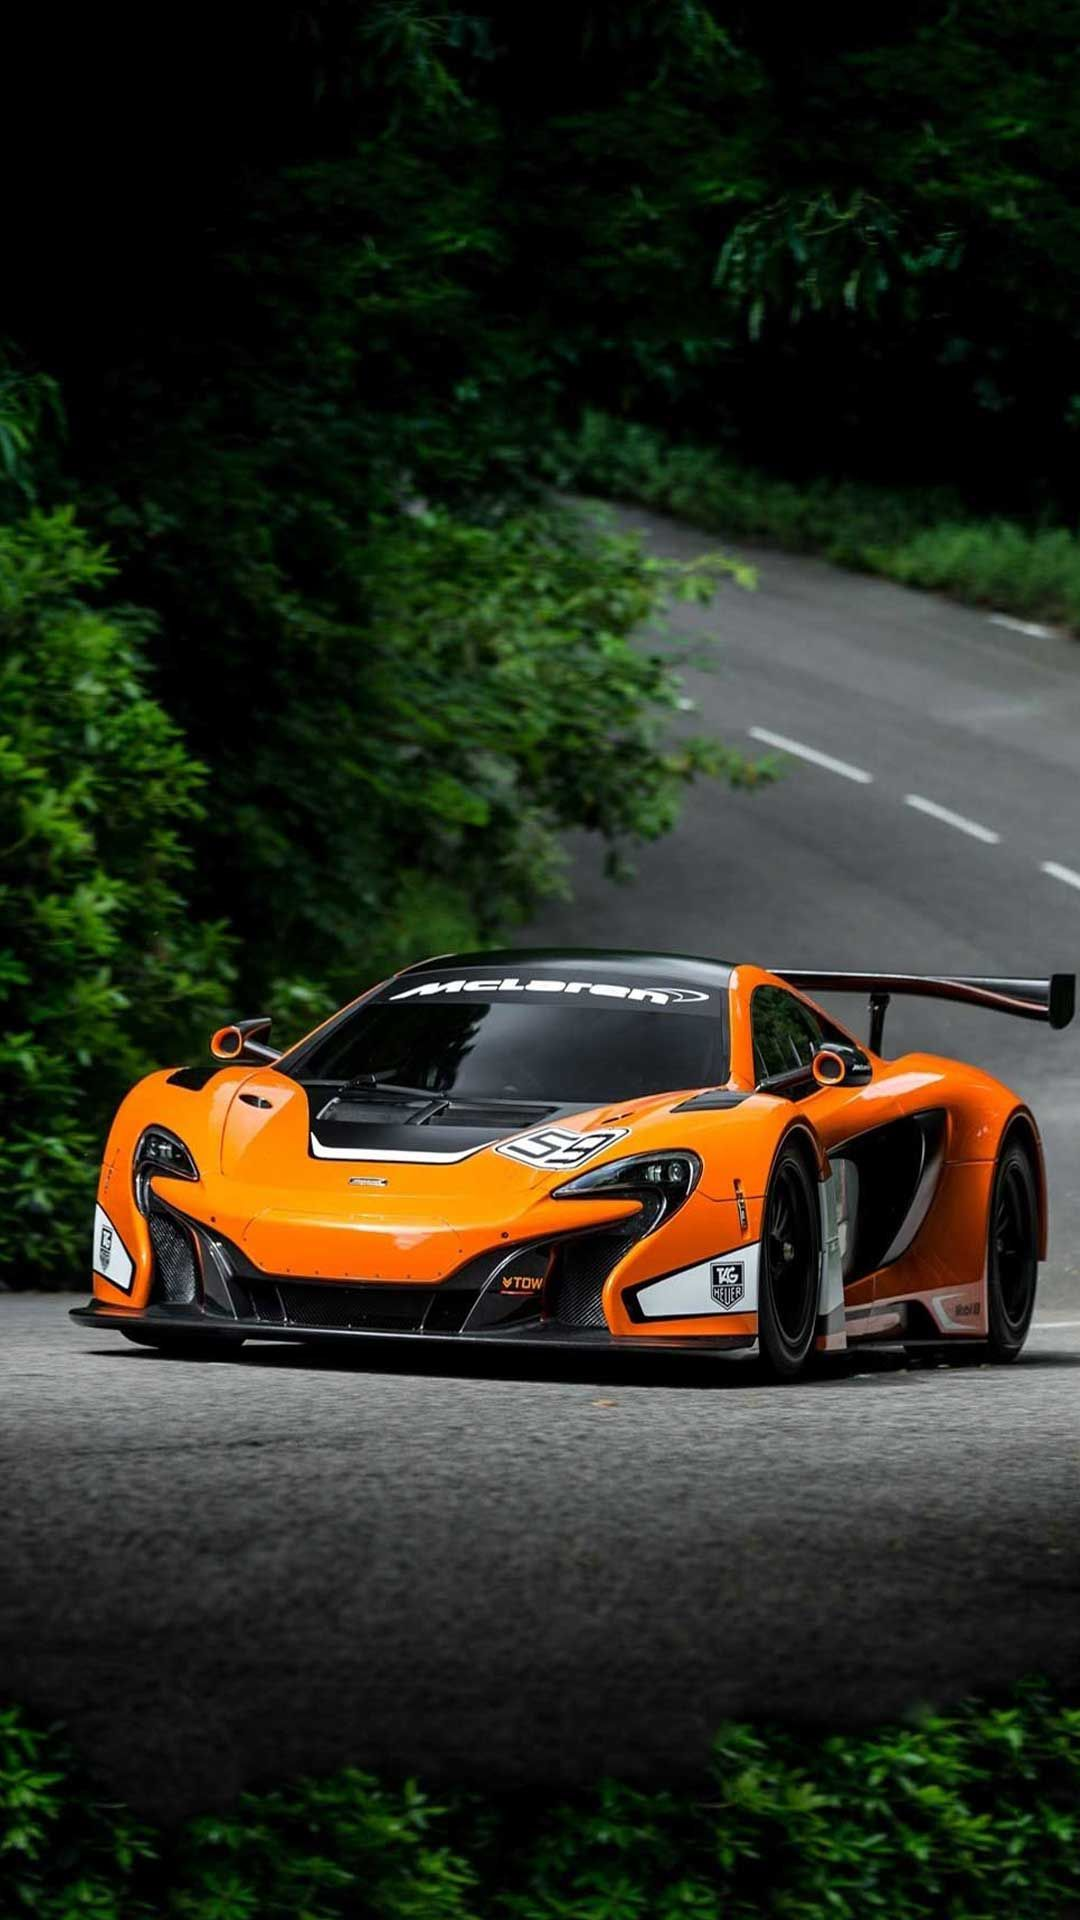 Pin By 文全 鄭 On Mclaren Car Iphone Wallpaper Cool Wallpapers